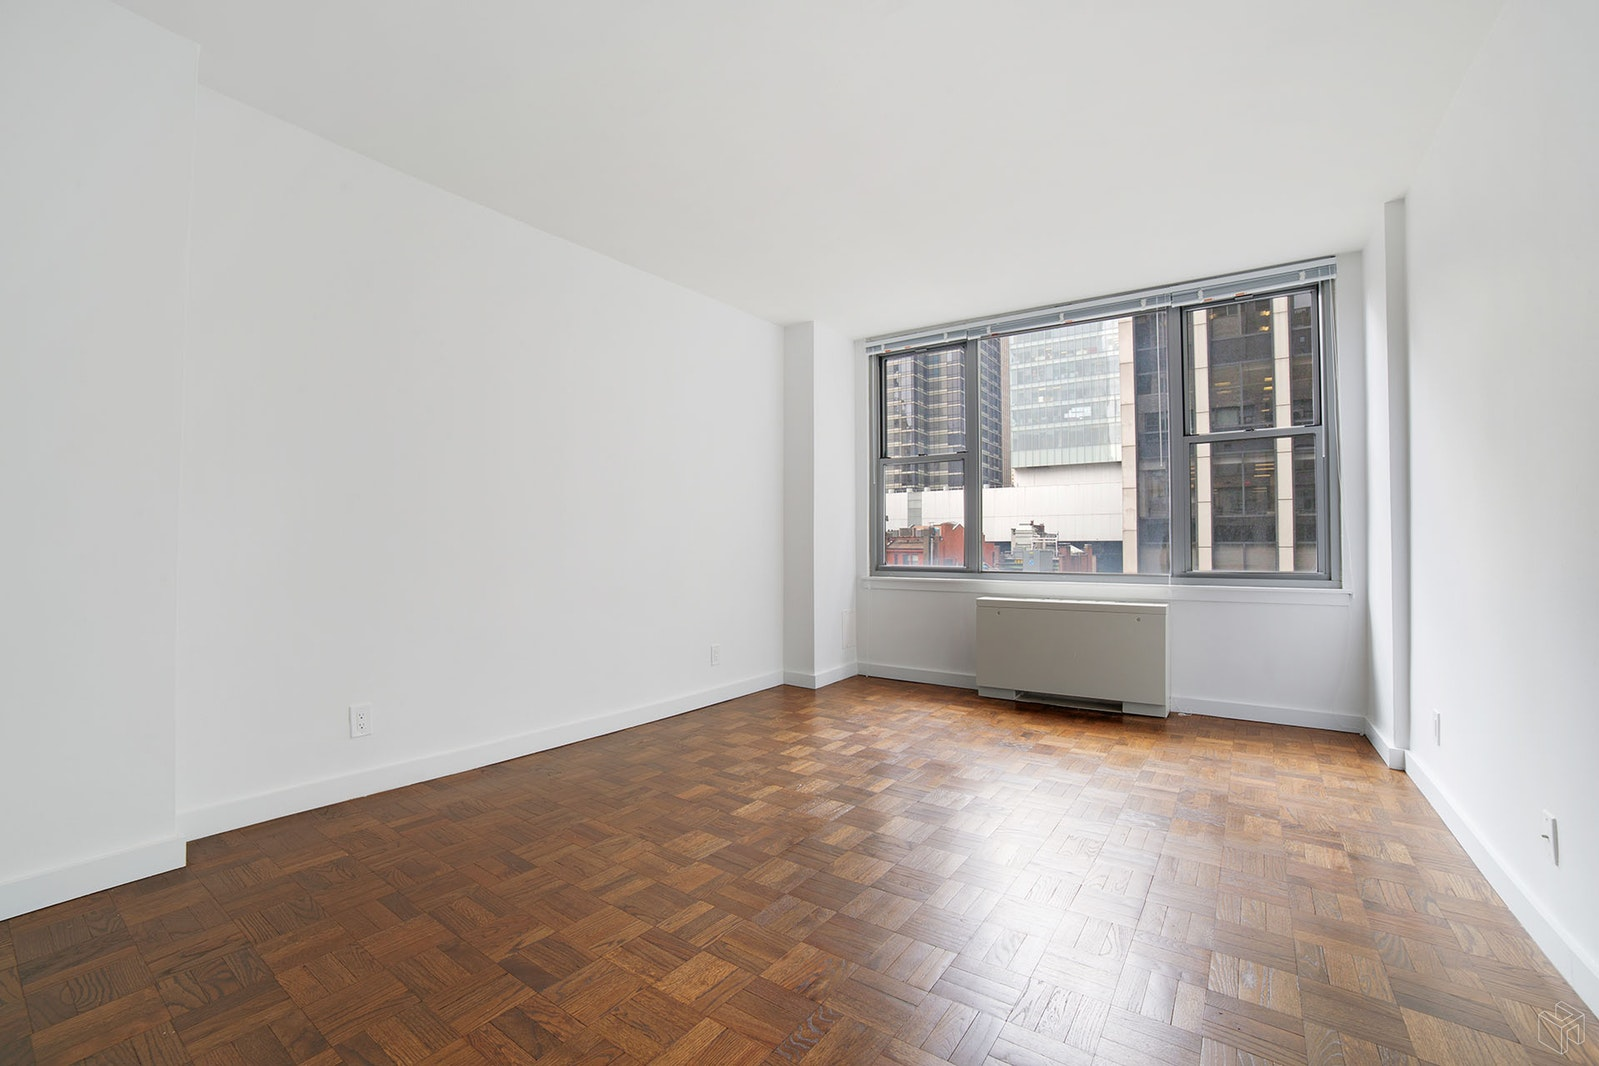 65 WEST 55TH STREET, Midtown West, $3,300, Web #: 19183770